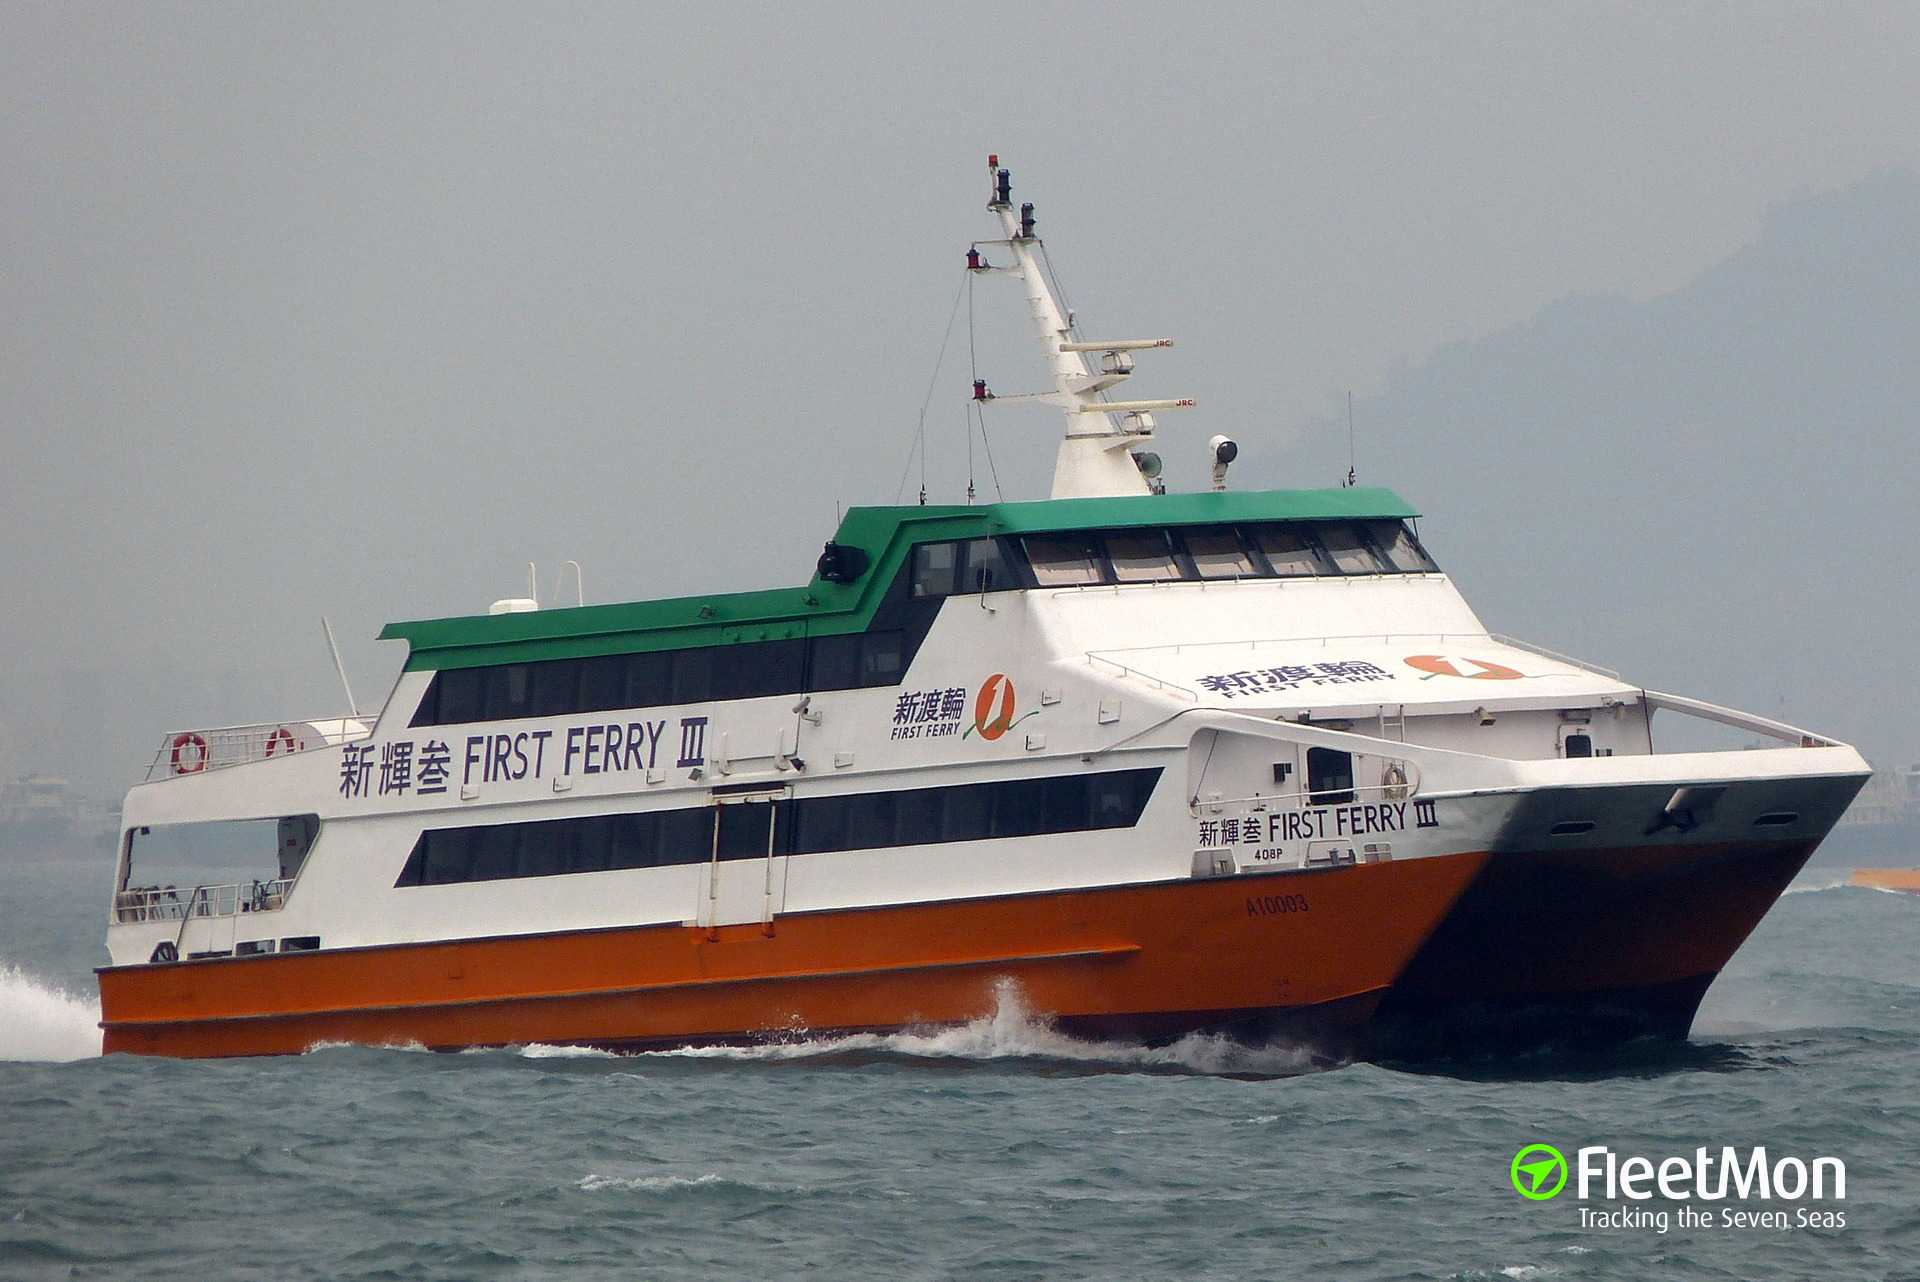 Speed ferry First Ferry III collided with a barge, dozens injured, Hong Kong